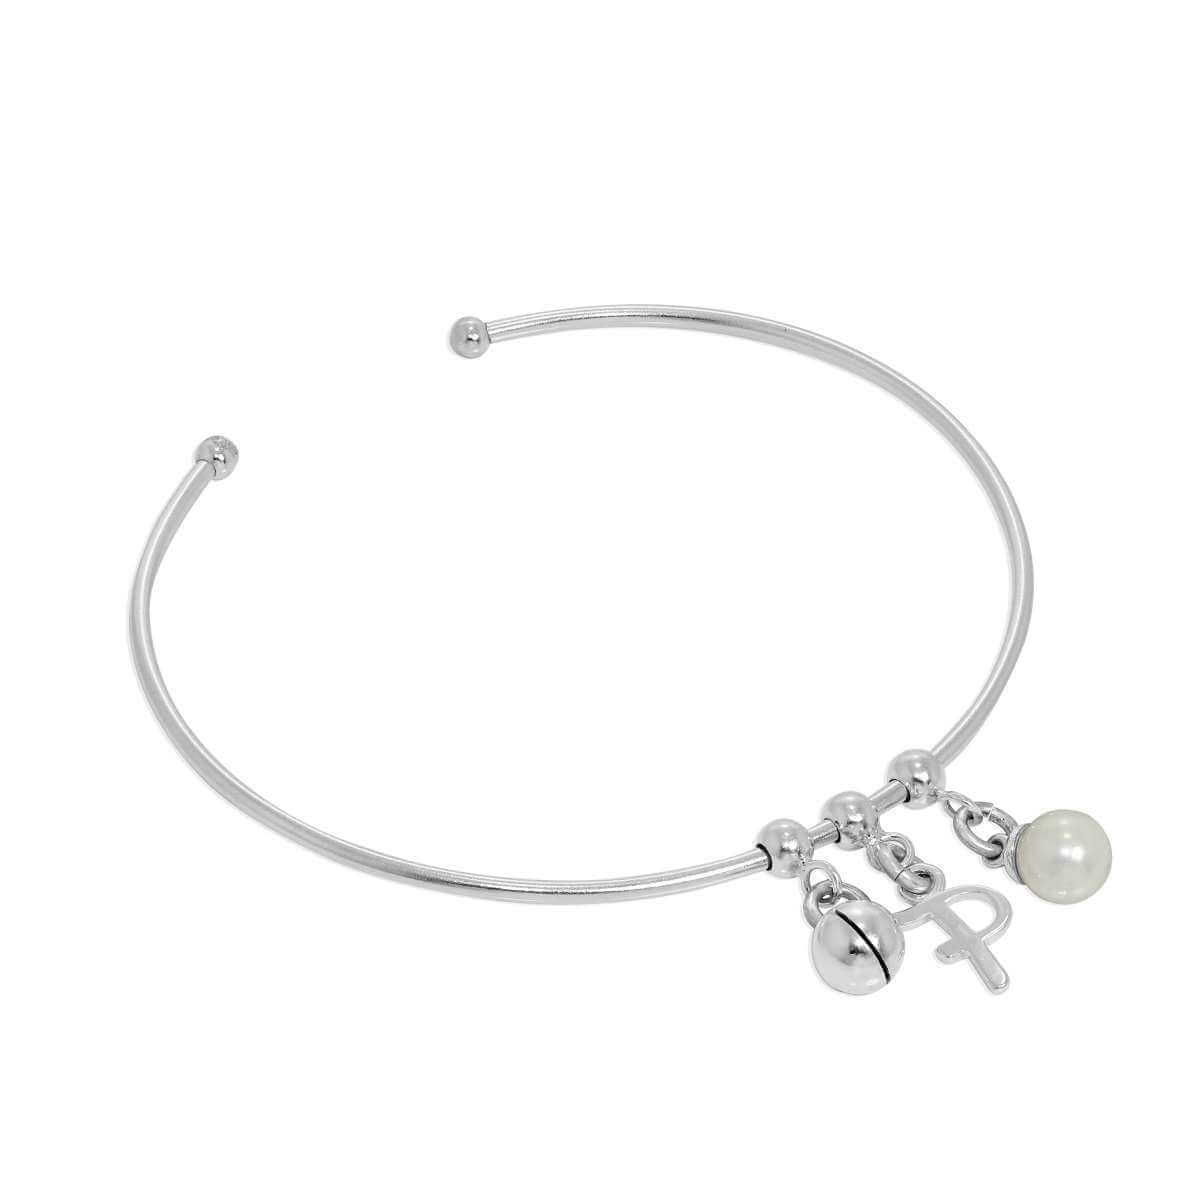 Sterling Silver Initial Letter & Pearl & Chiming Ball Adjustable Cuff Charm Bangle